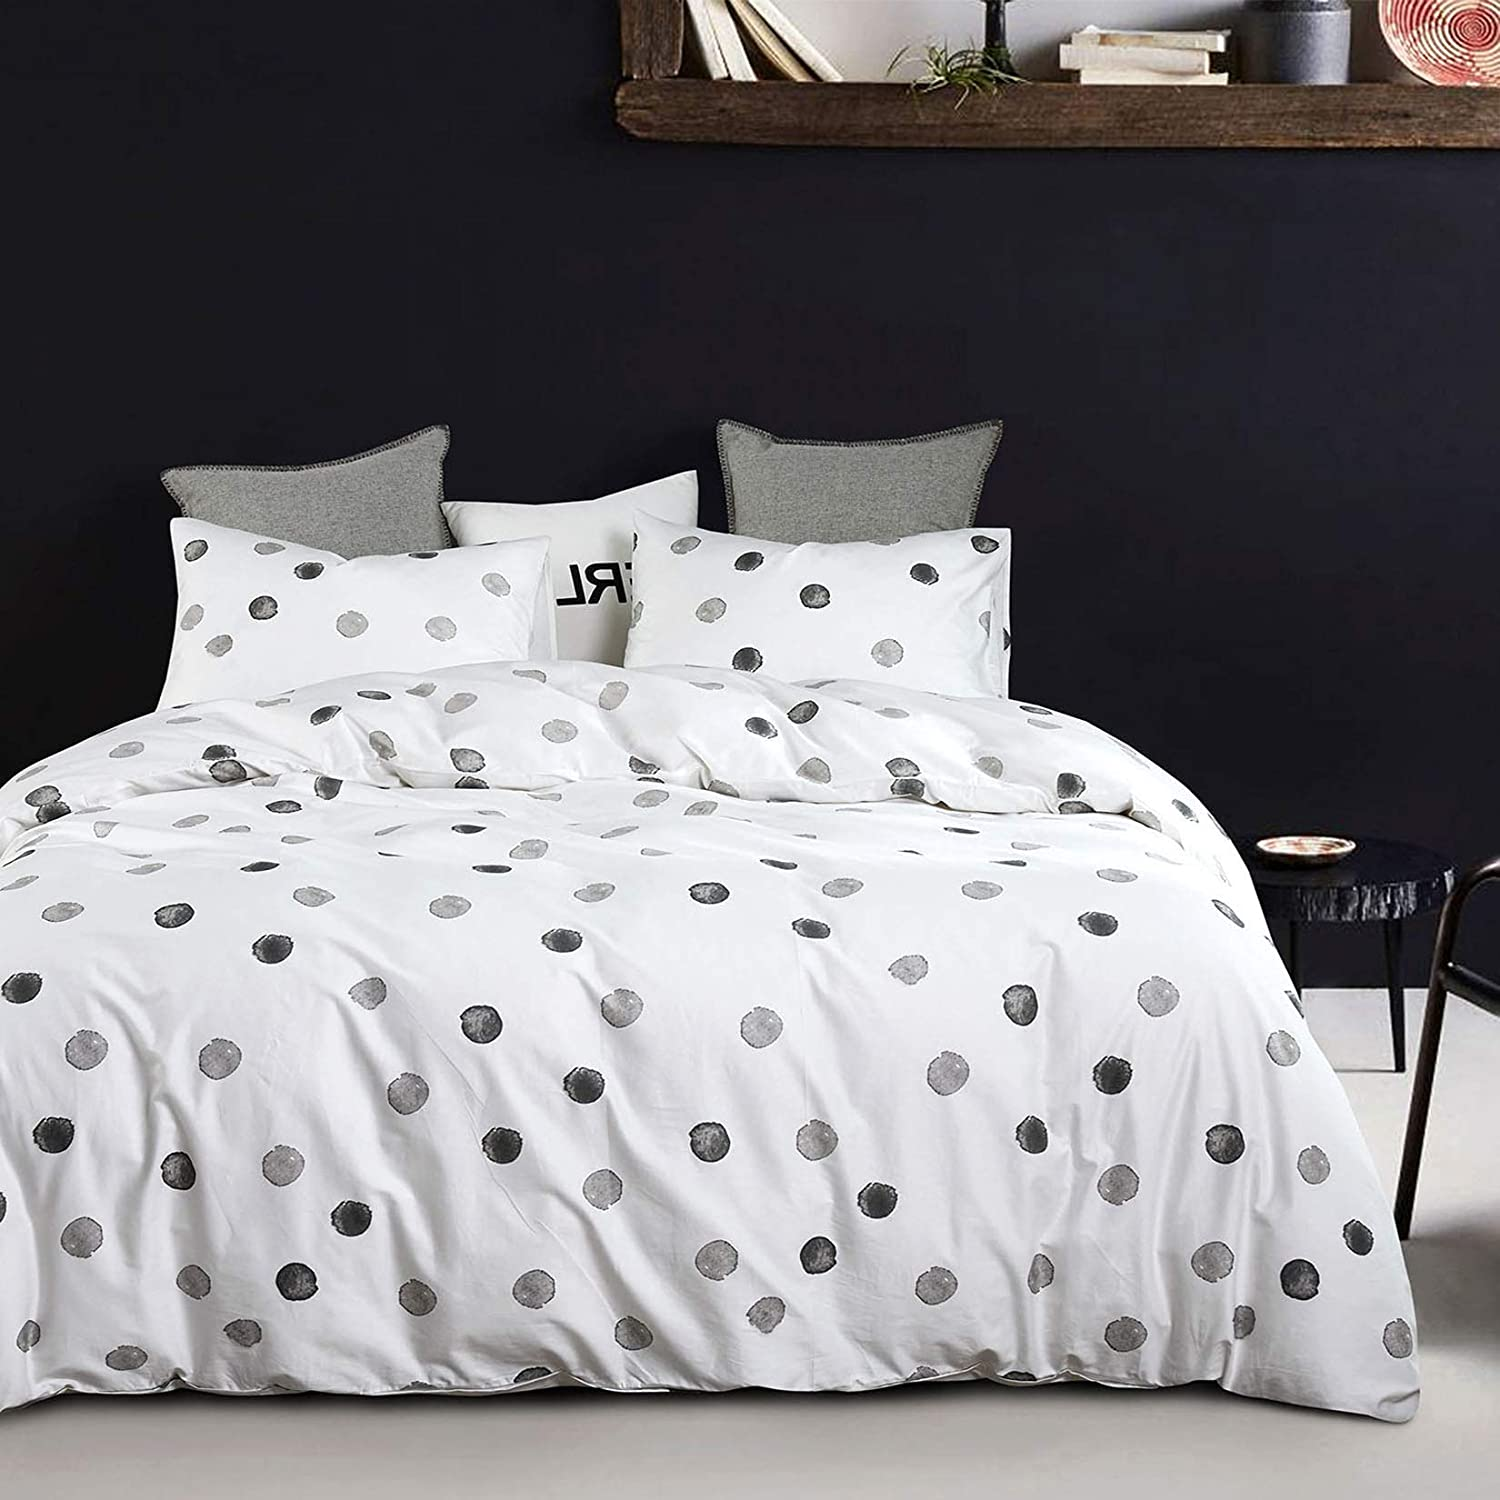 Wake In Cloud - Dotted White Comforter Set, 100% Cotton Fabric with Soft Microfiber Fill Bedding, Gray Grey Watercolor Dots Printed (3pcs, Queen Size)